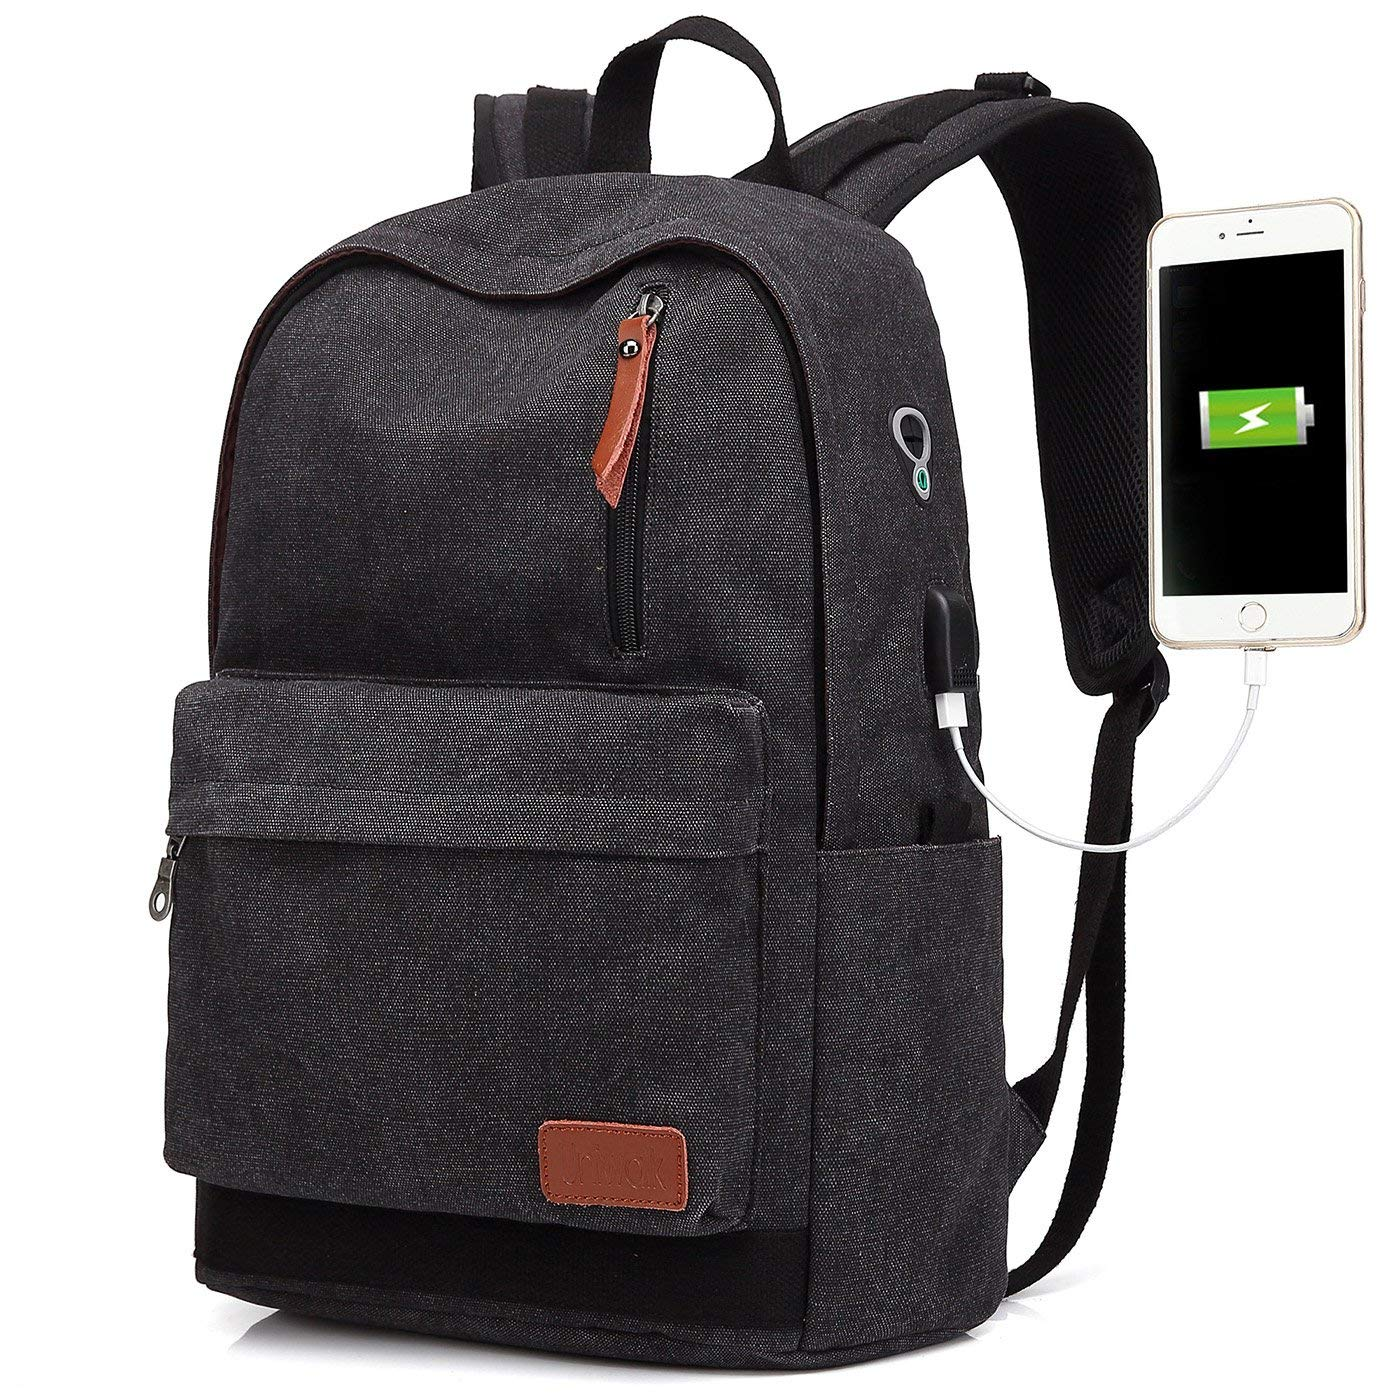 Backpack Waterproof Charging Lightweight Anti theft